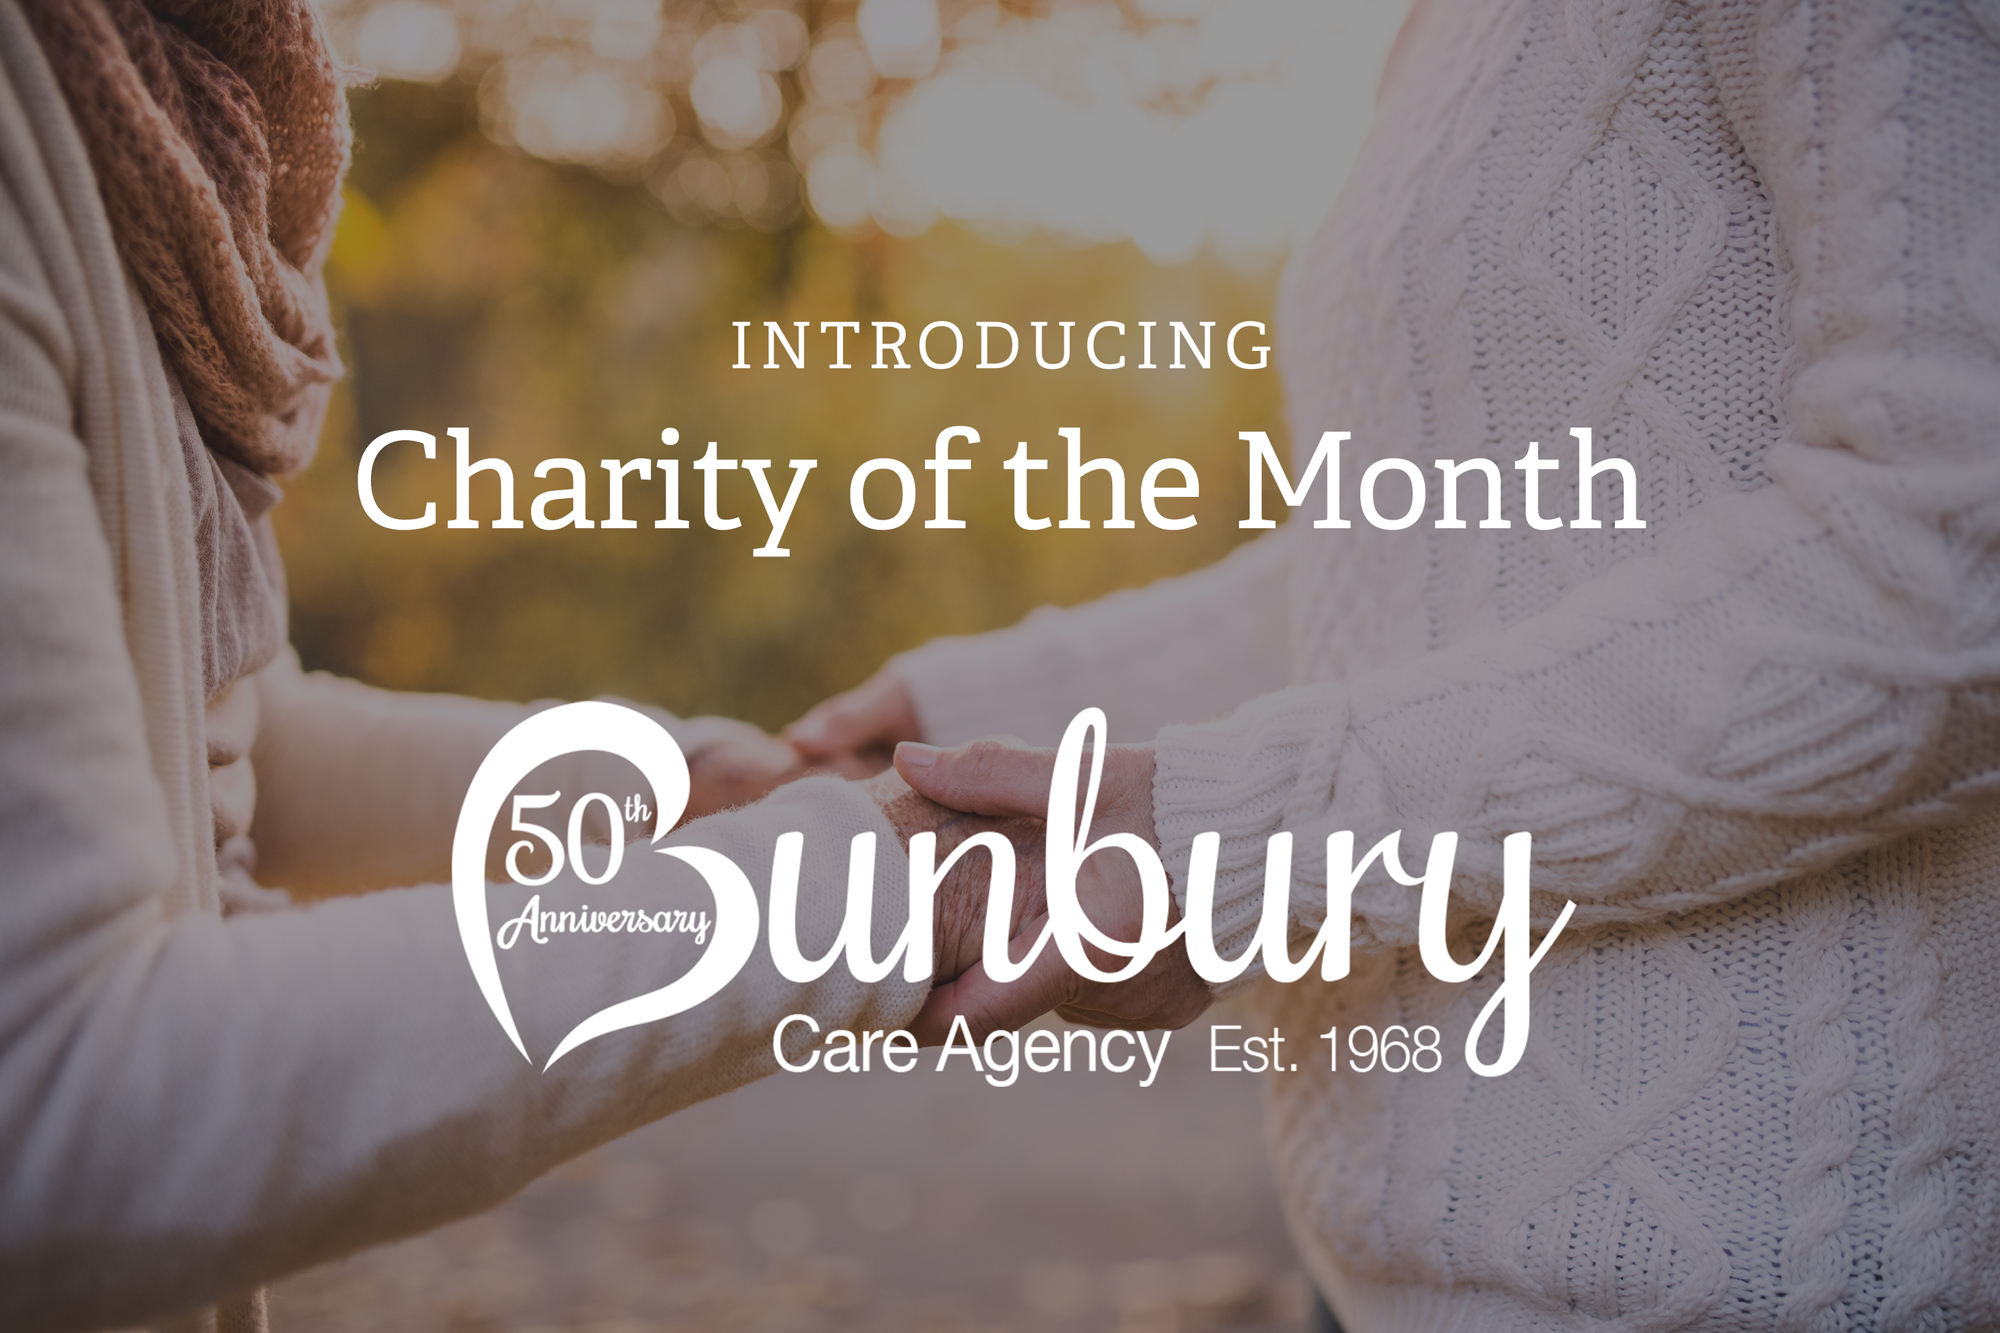 Charity of the Month - Bunbury Care Agency